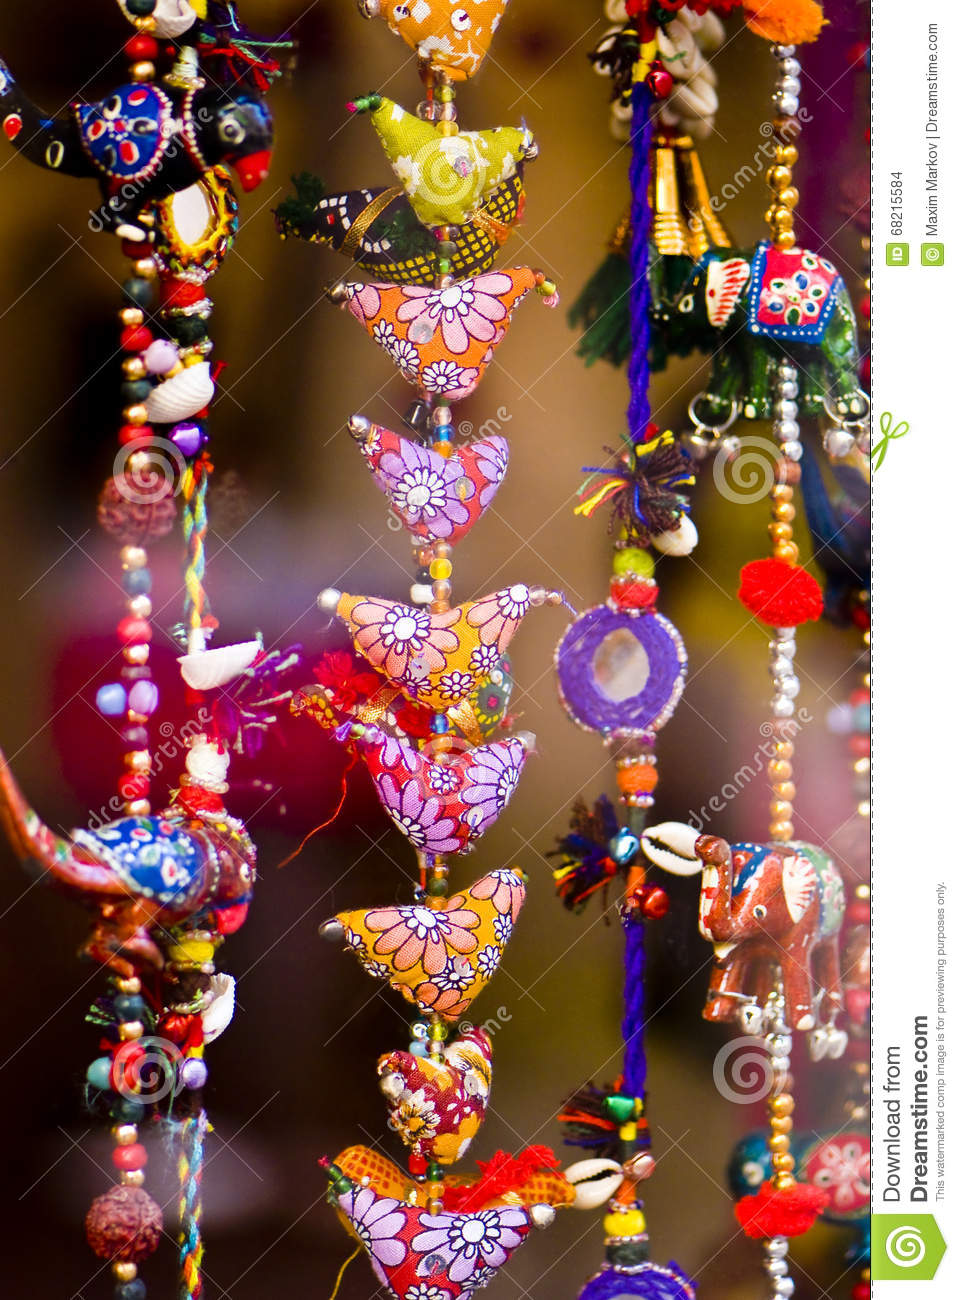 Close Up Photo Of Bright Warm Colorful Indian Home Decorations Different Shapes Wonderful National Patterns Flowers Geometric Figures Etc